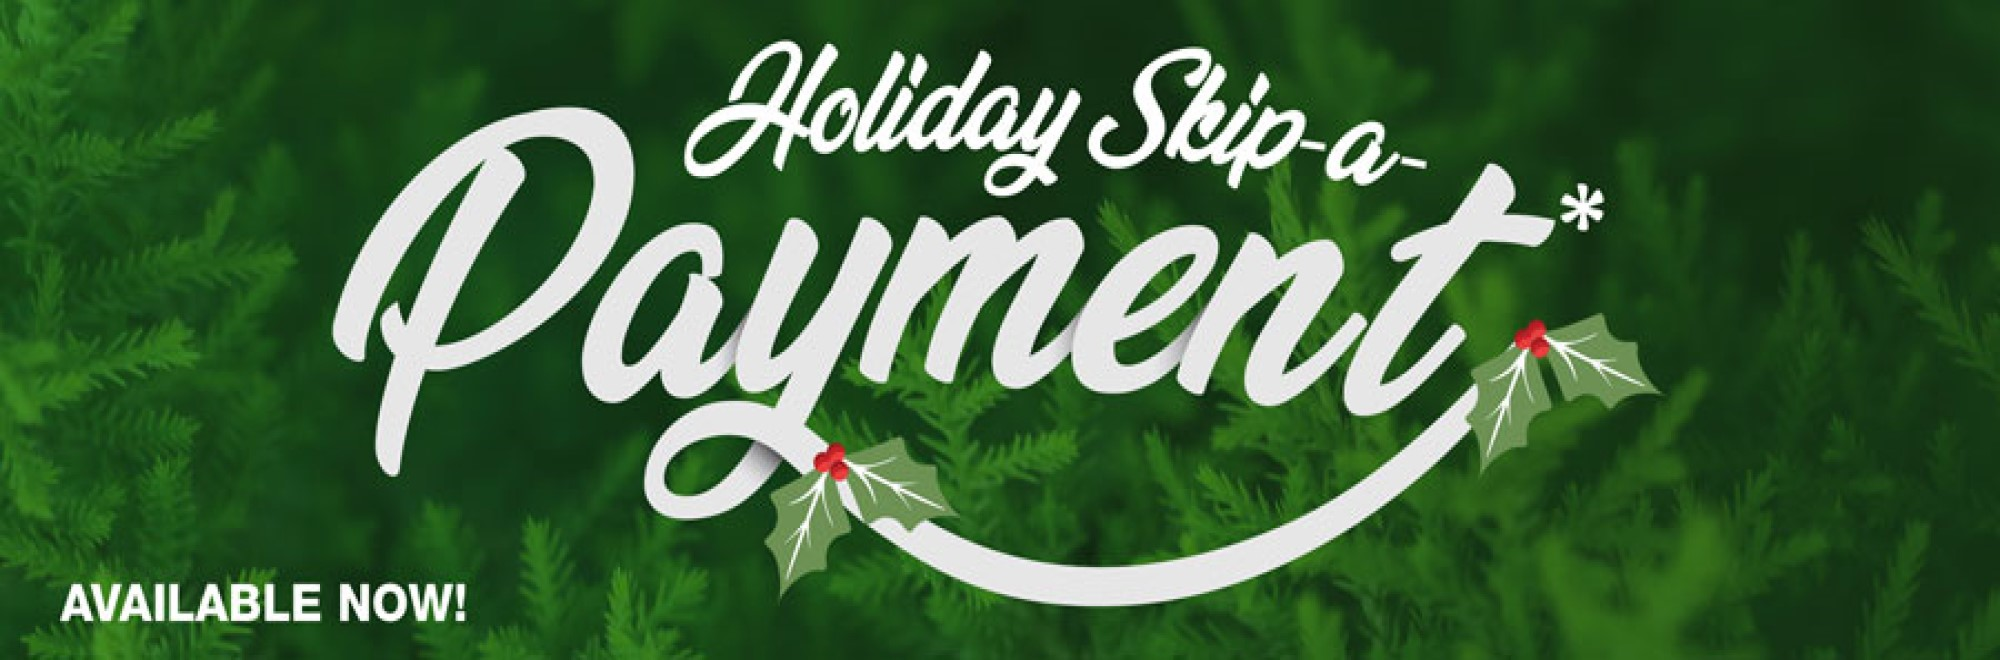 DECEMBER HOLIDAY SKIP-A-PAY SPECIAL!